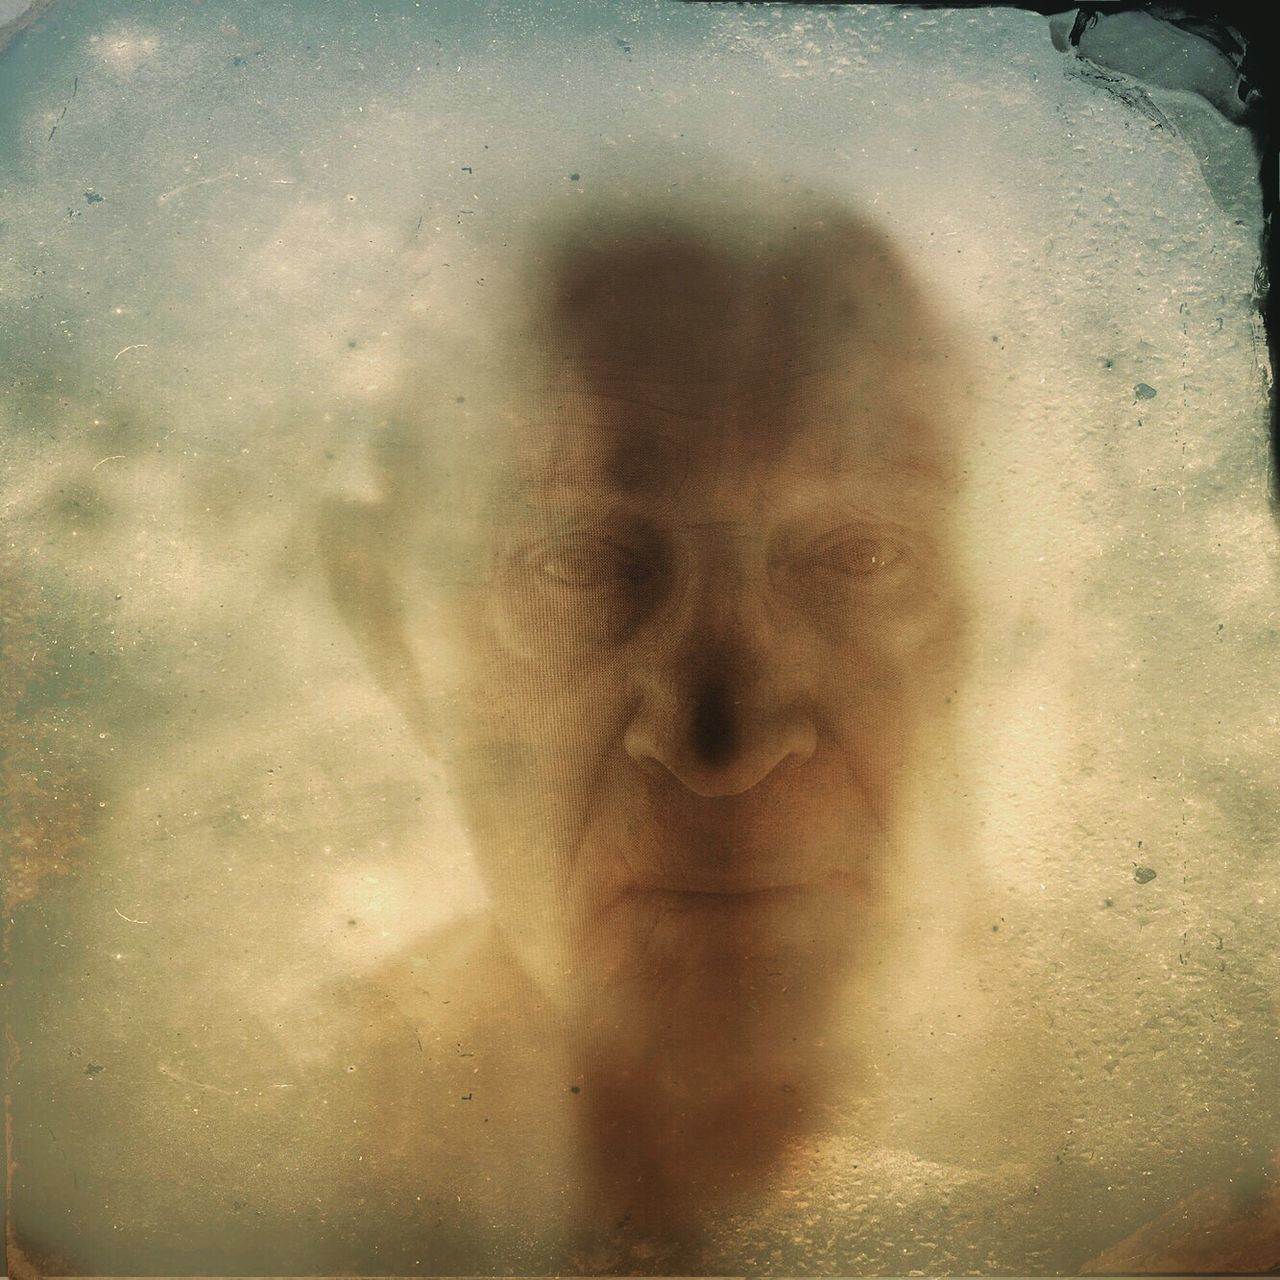 one person, spooky, real people, indoors, close-up, human face, men, day, young adult, people